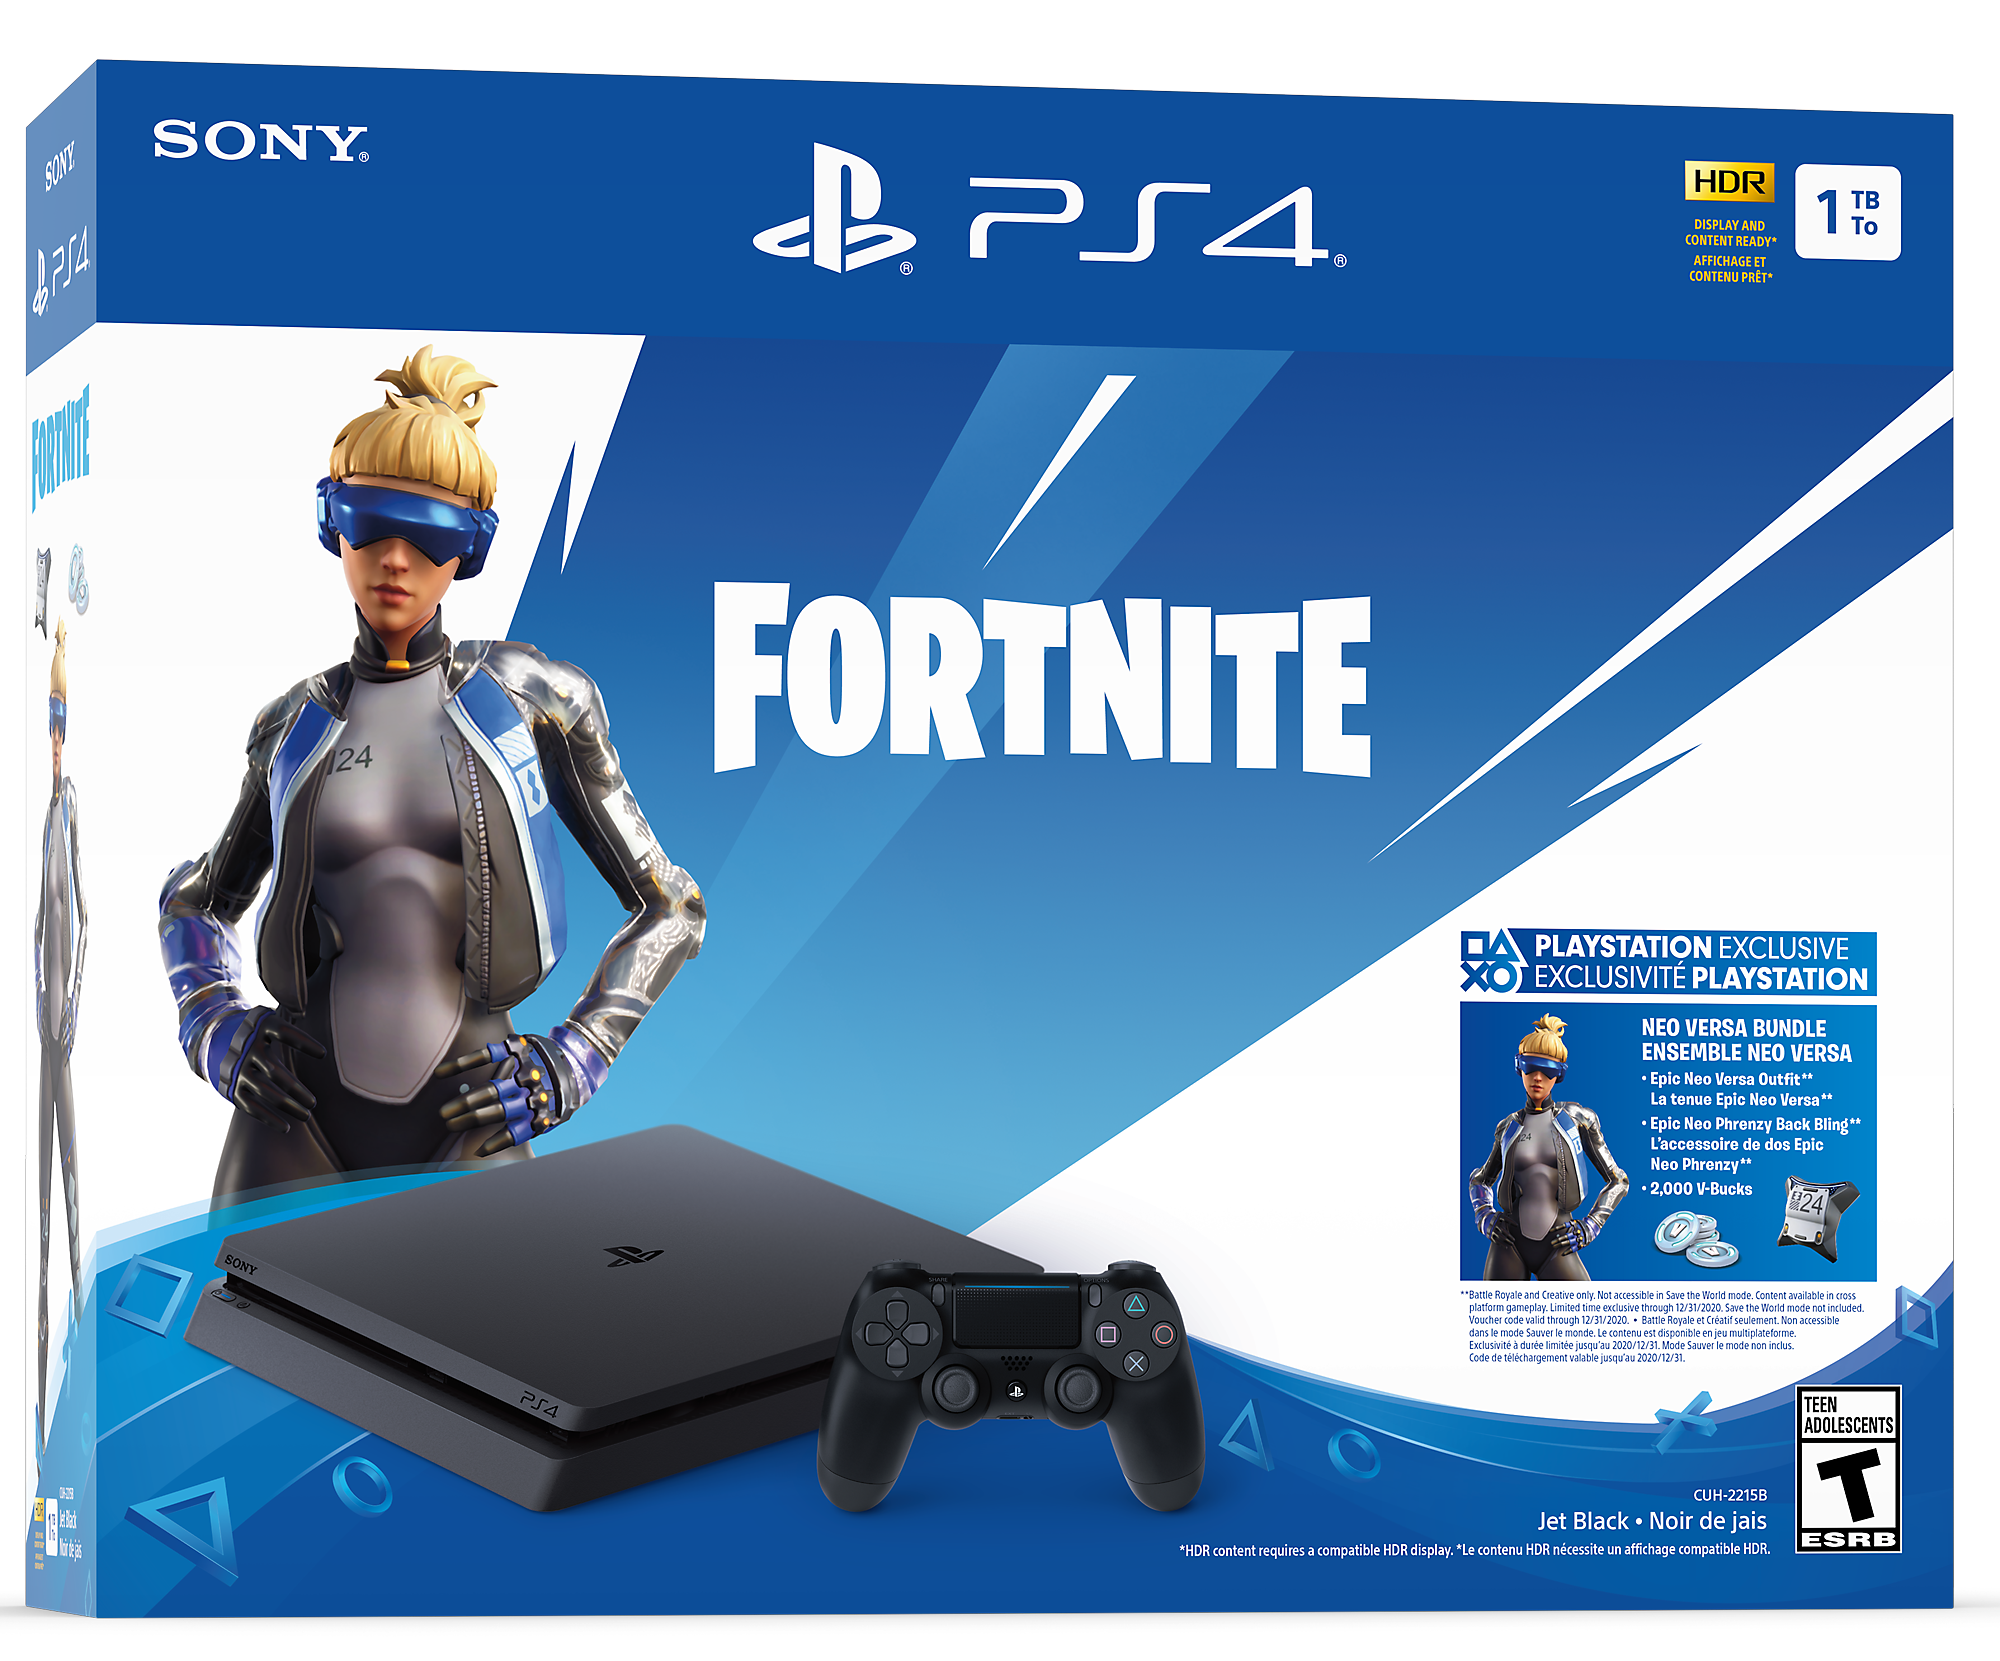 PS4 hardware bundle